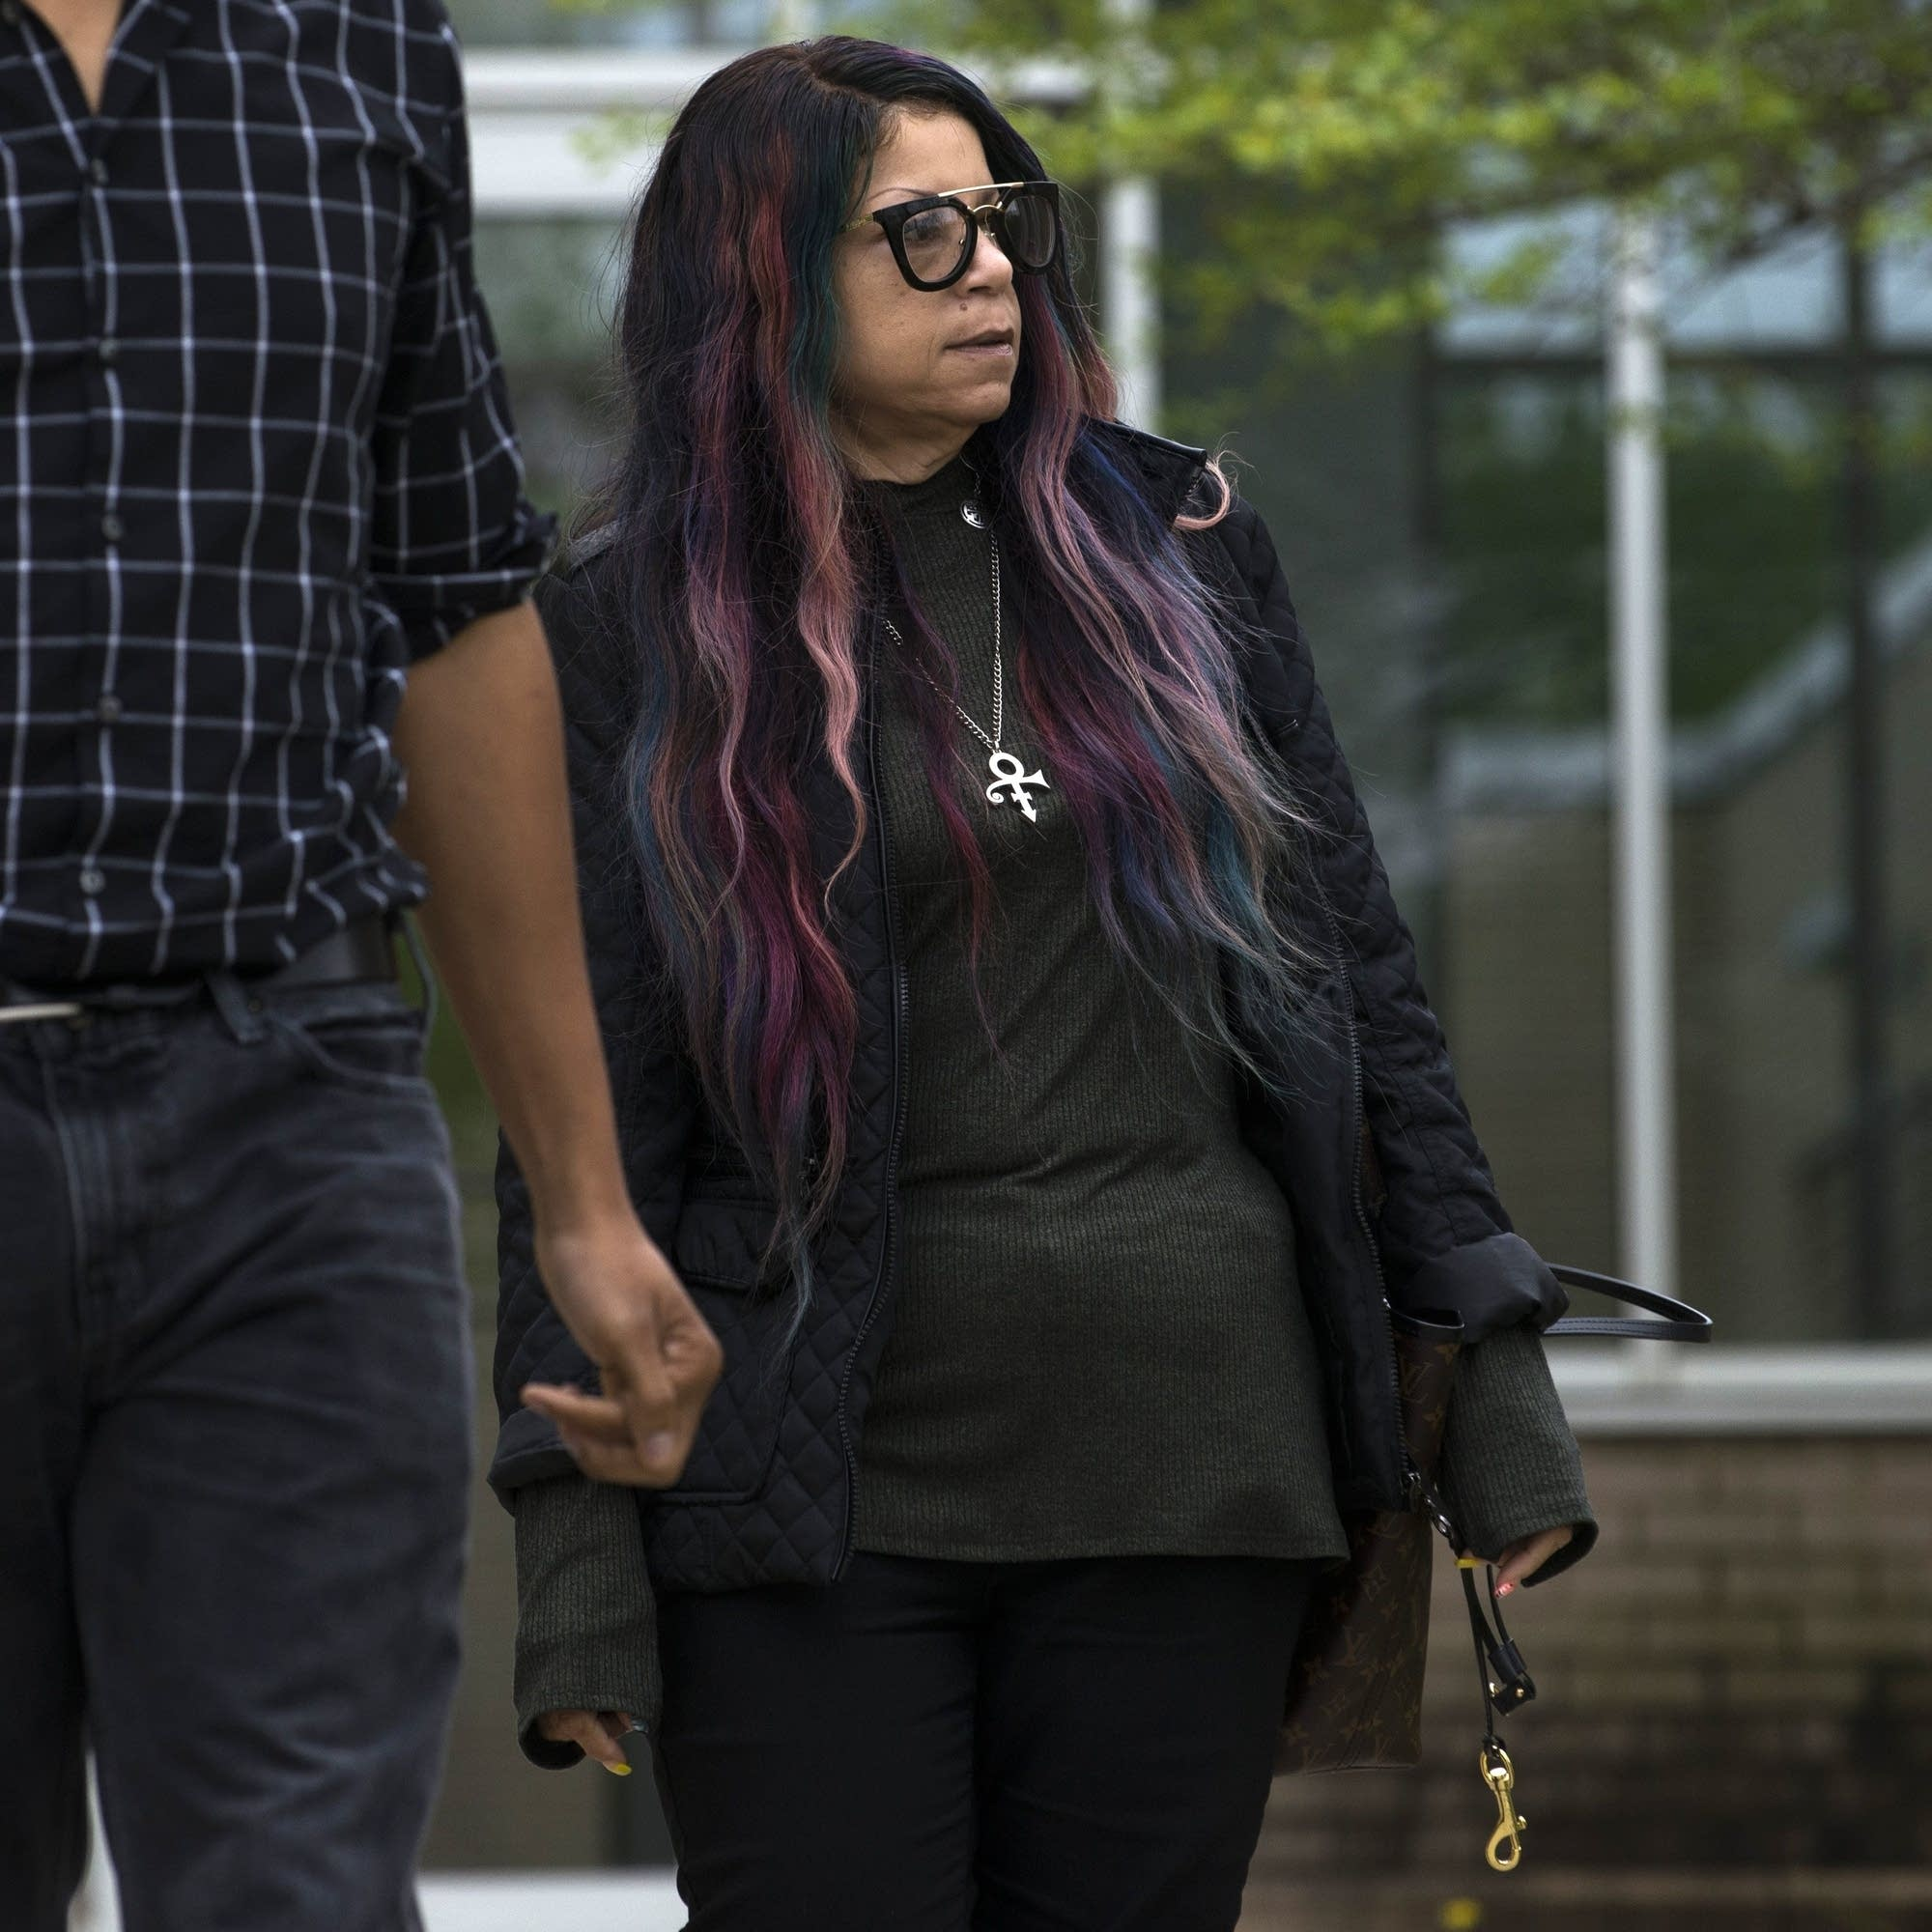 Tyka Nelson outside the Carver County District Court